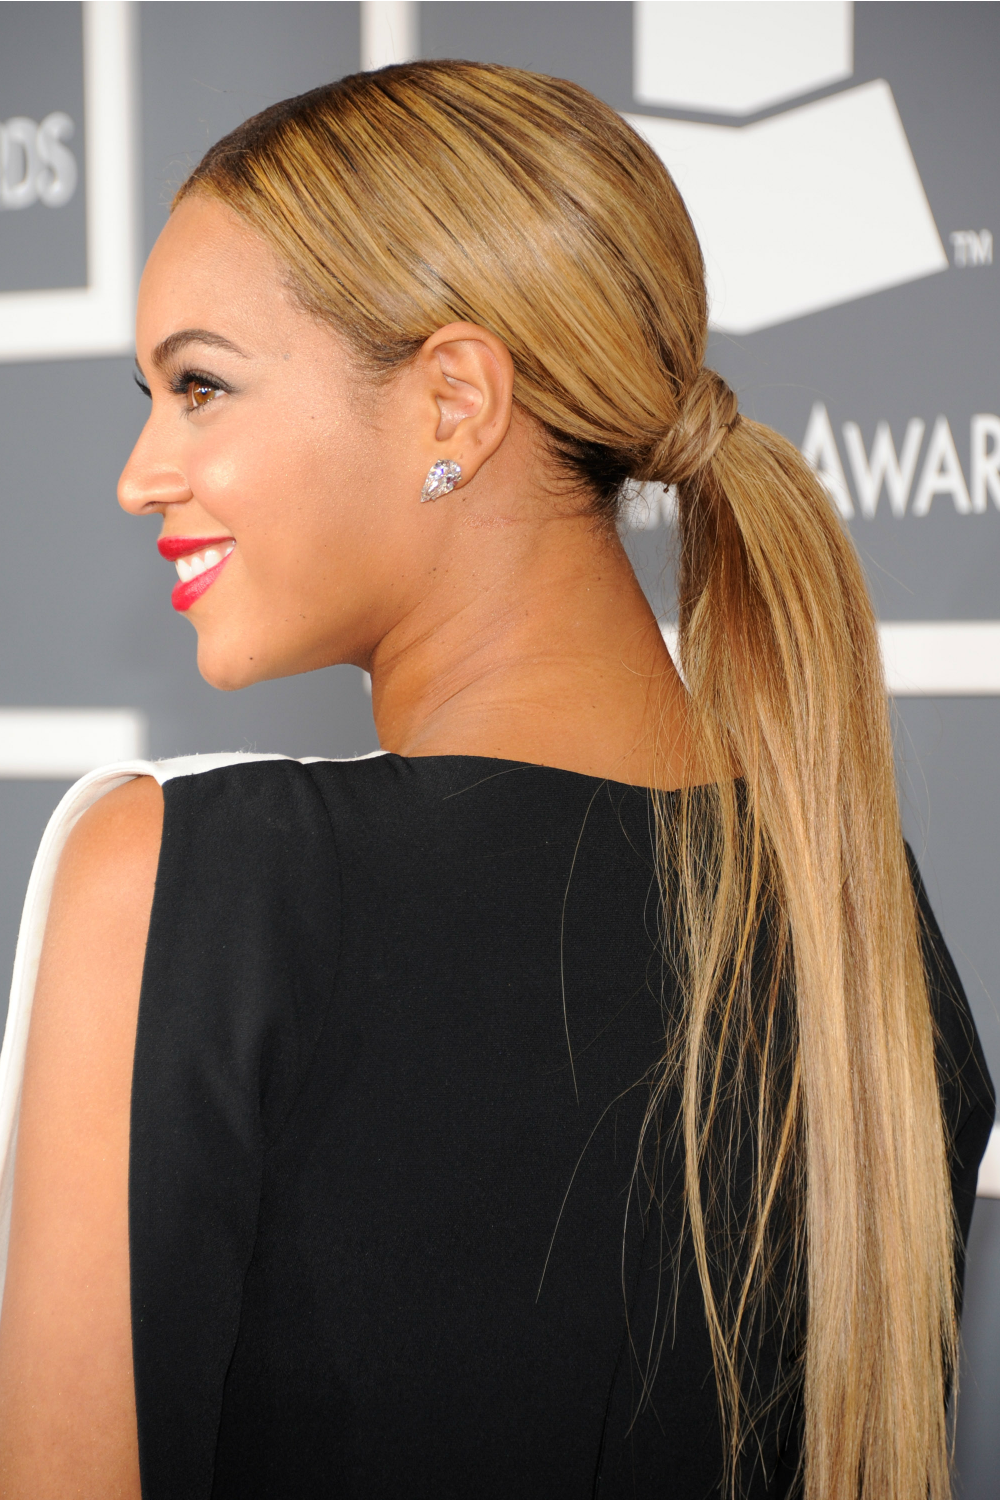 20 Ponytail Hairstyles - Easy Ponytail Ideas You Should This Summer